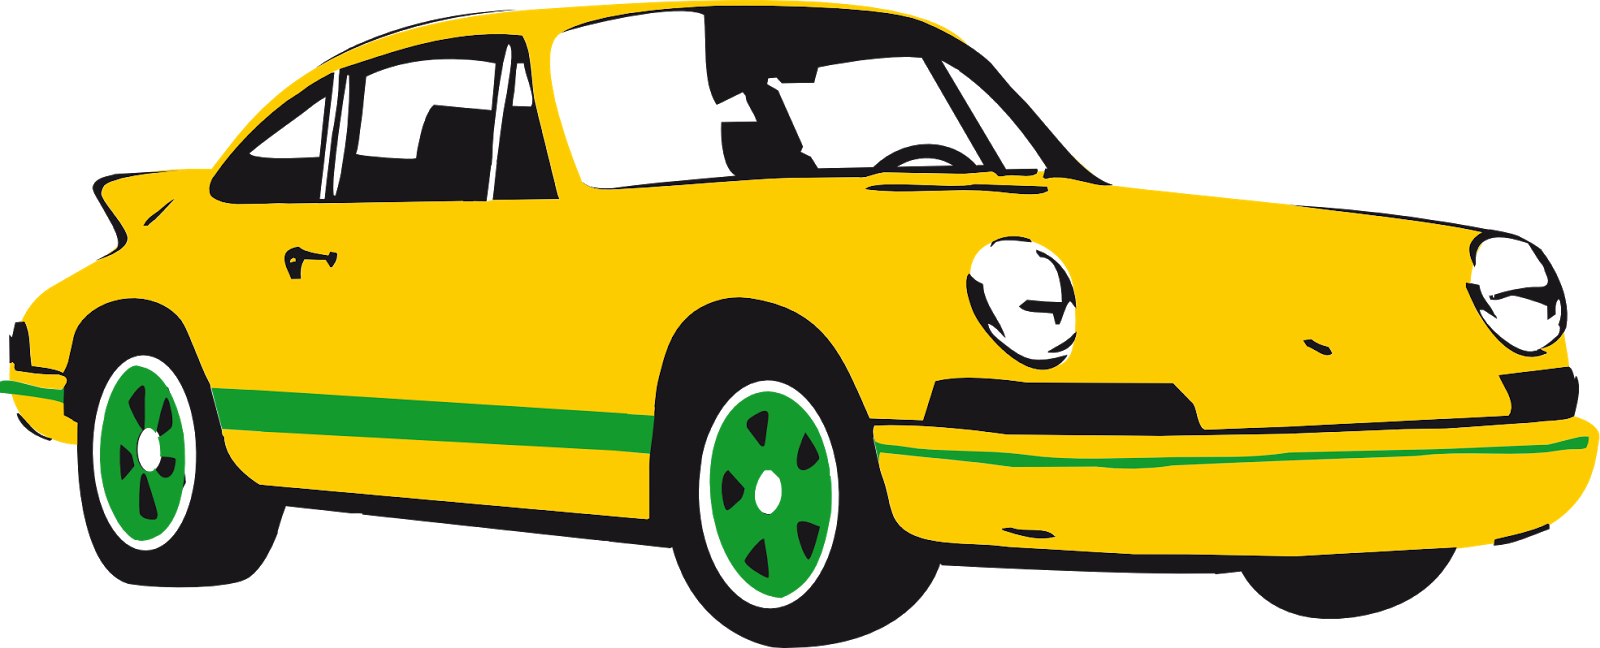 Car black and white. Clipart cars yellow